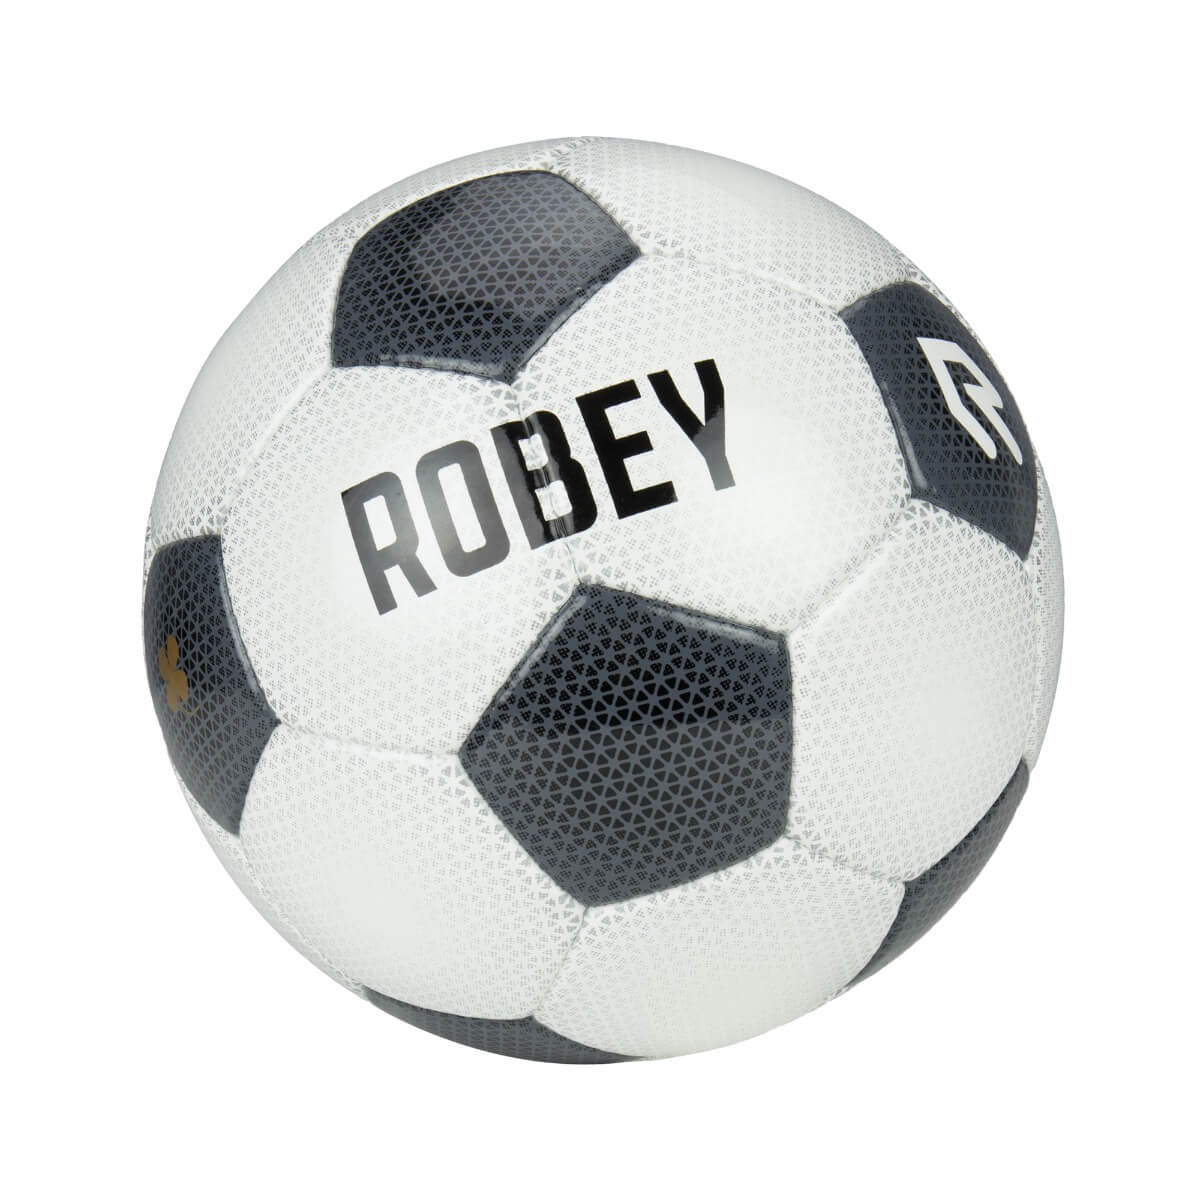 Robey Ball Black White